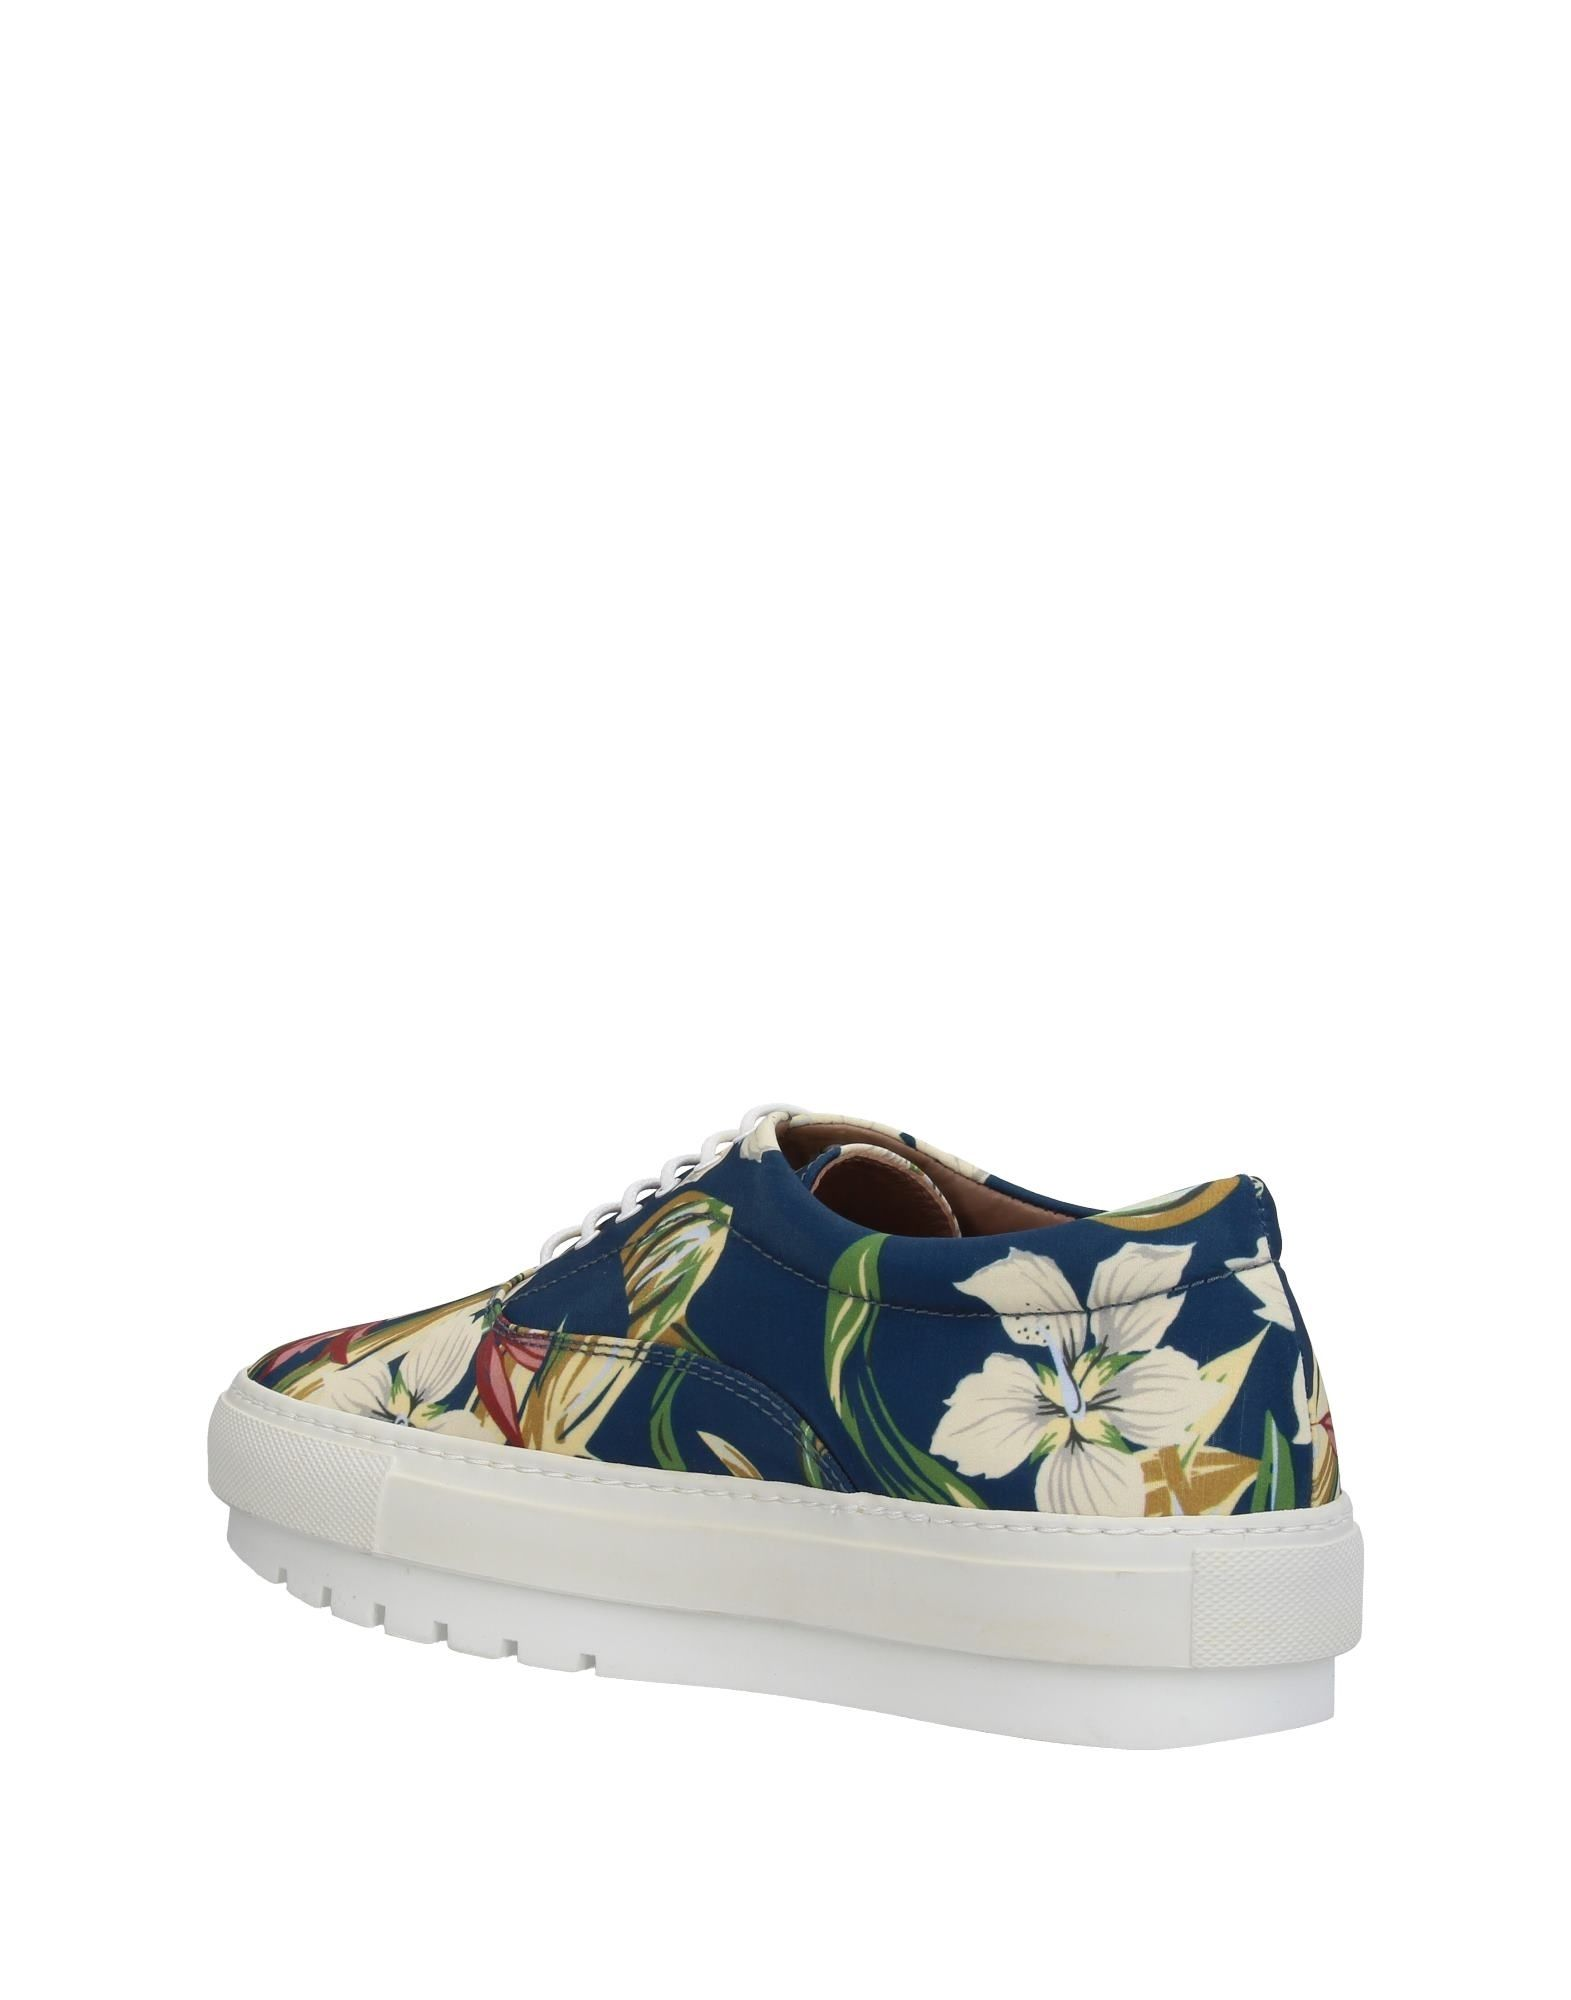 Sneakers Audley Femme - Sneakers Audley sur